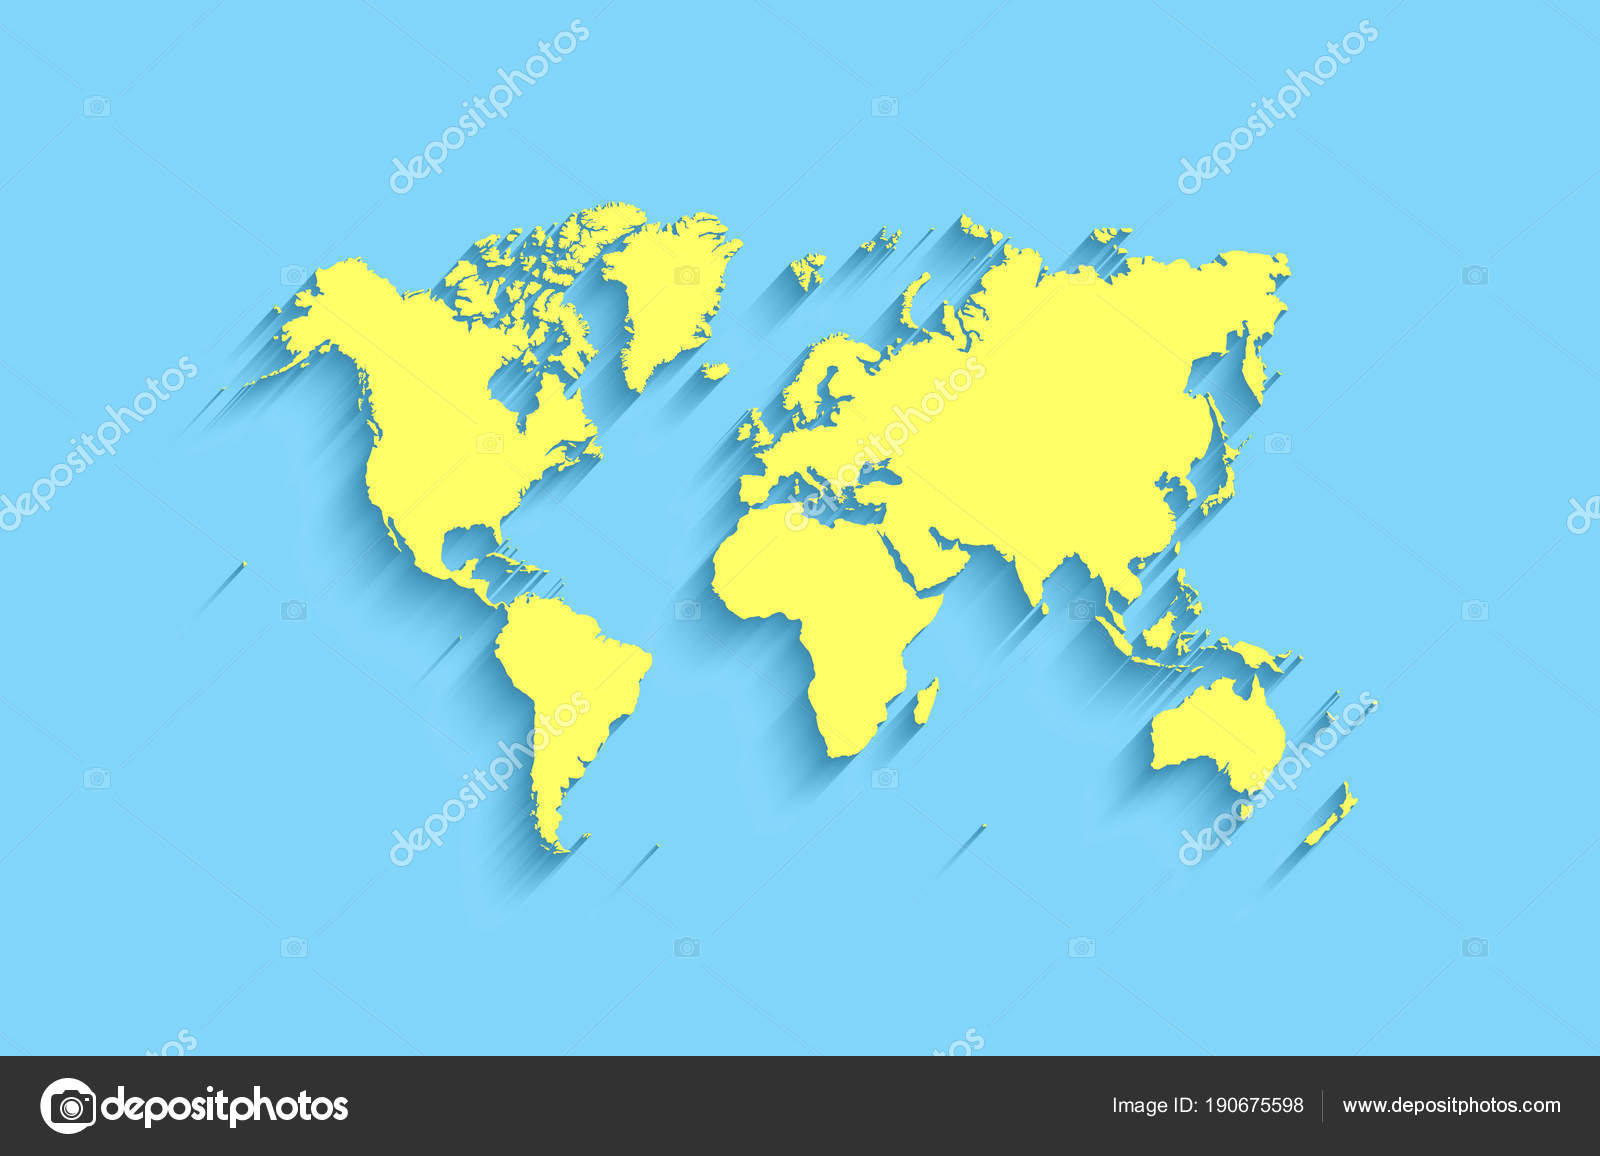 Flat world map abstract vector background for wallpaper stock flat world map abstract vector background for wallpaper stock vector gumiabroncs Images